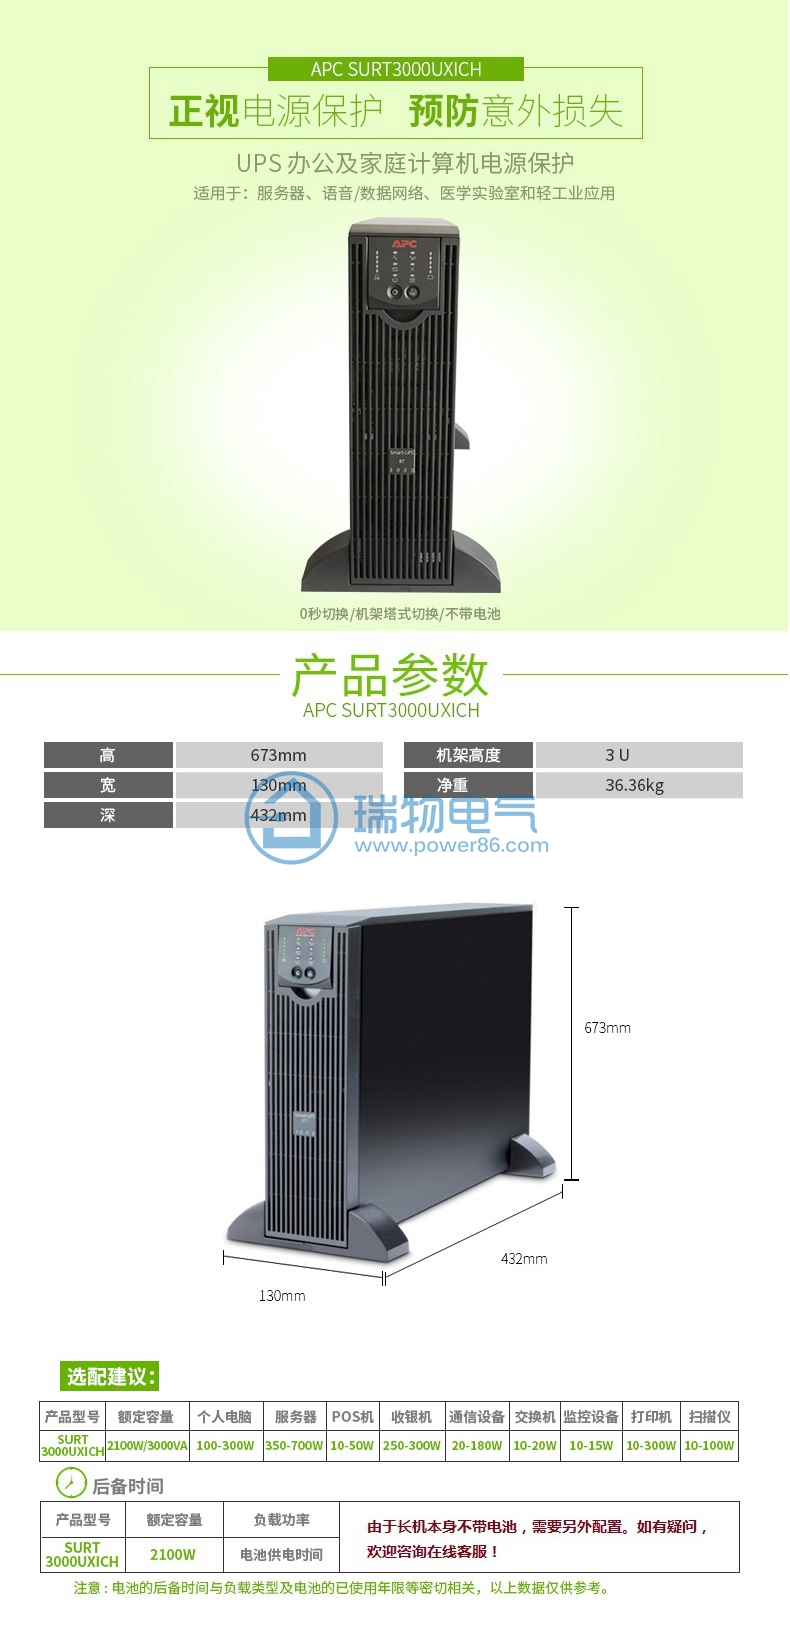 产品介绍http://www.power86.com/rs1/ups/14/132/74/74_c0.jpg